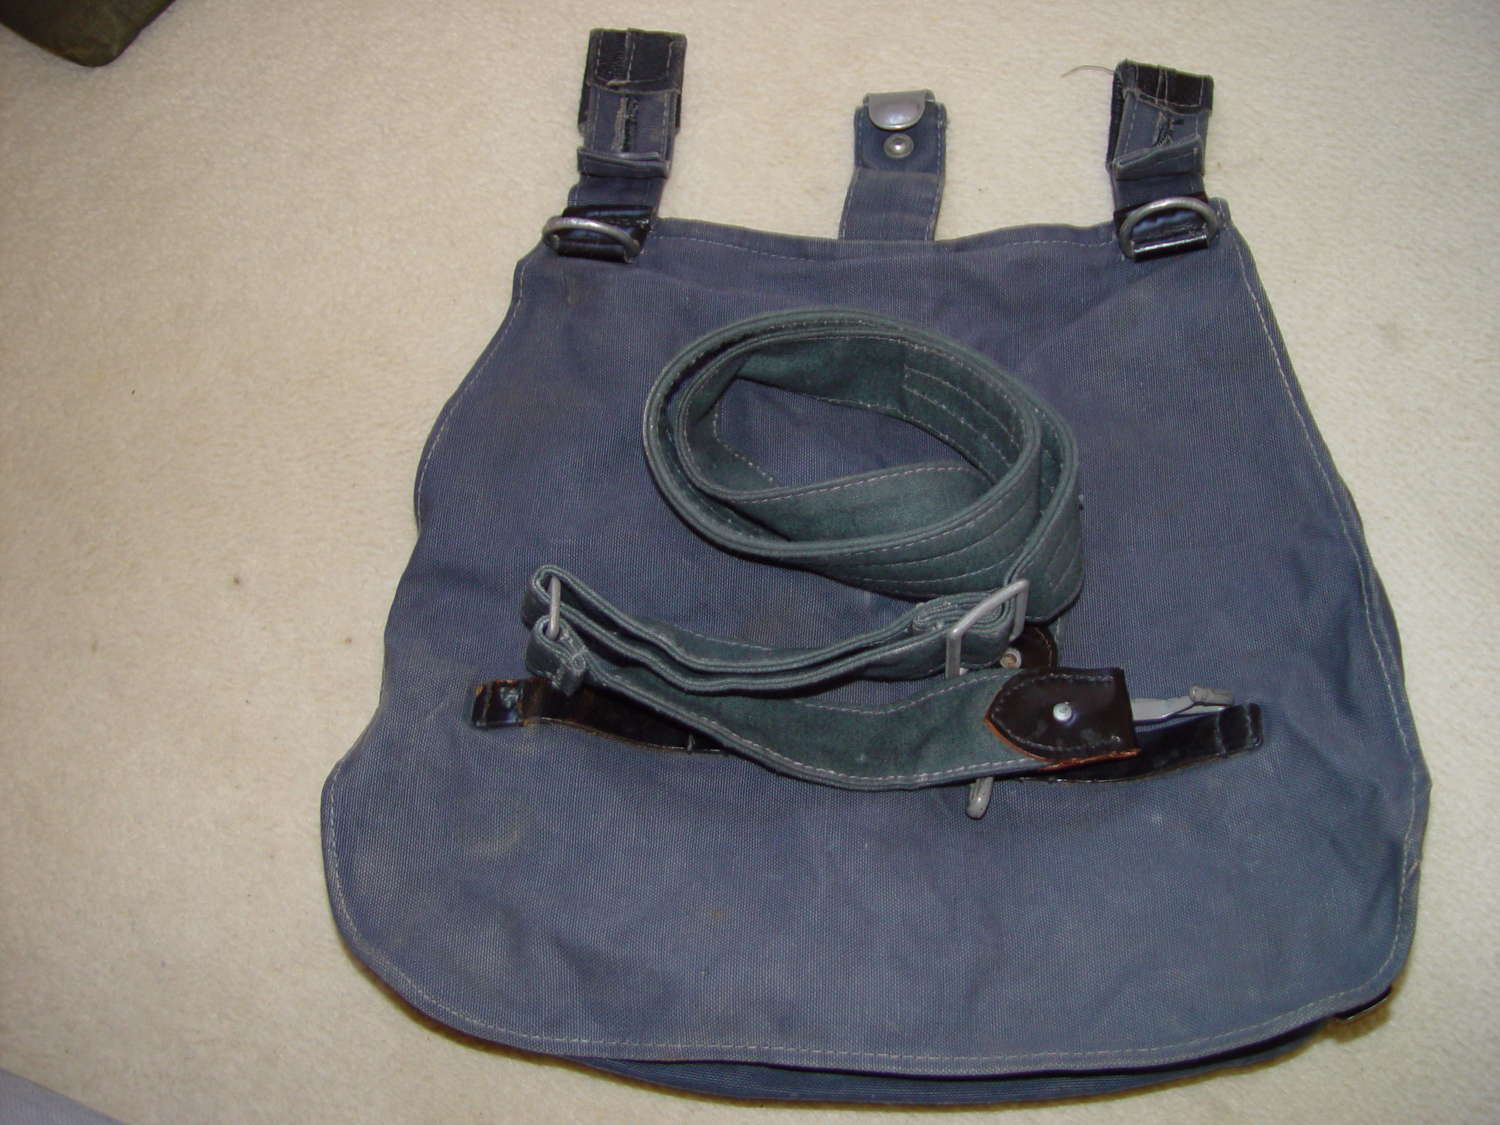 Luftwaffe bread bag with strap